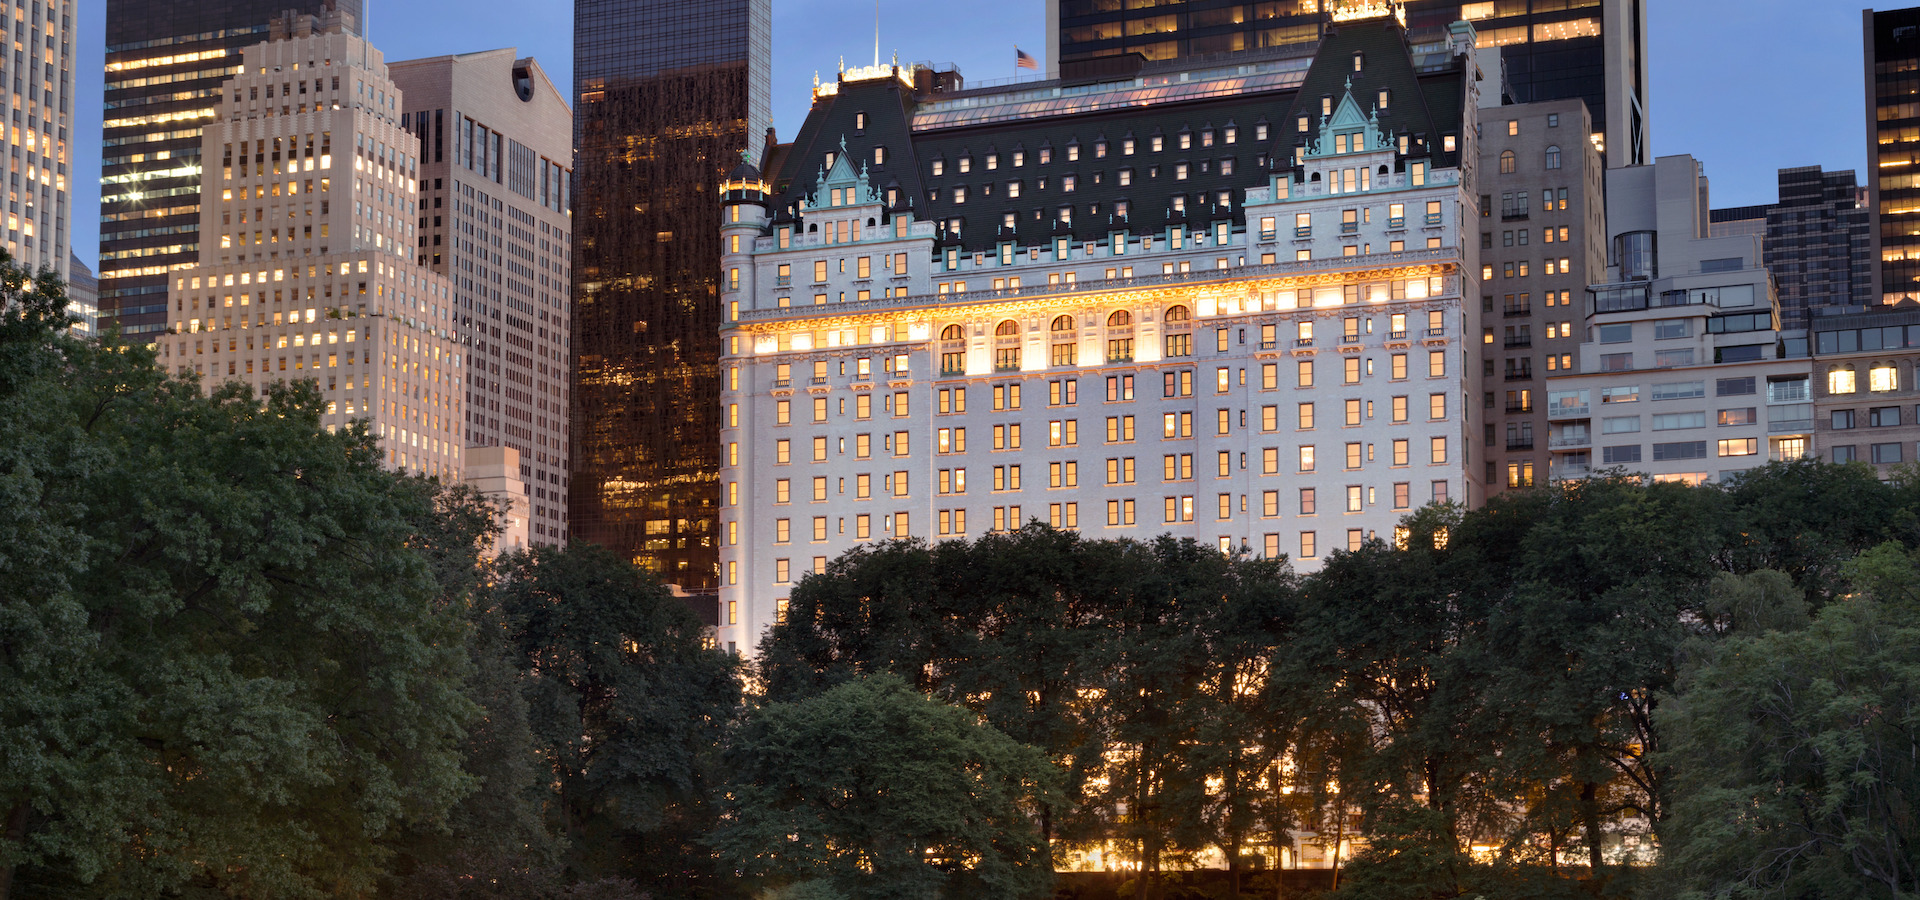 Luxury Hotel Near Central Park 5 Star Hotel In Nyc The